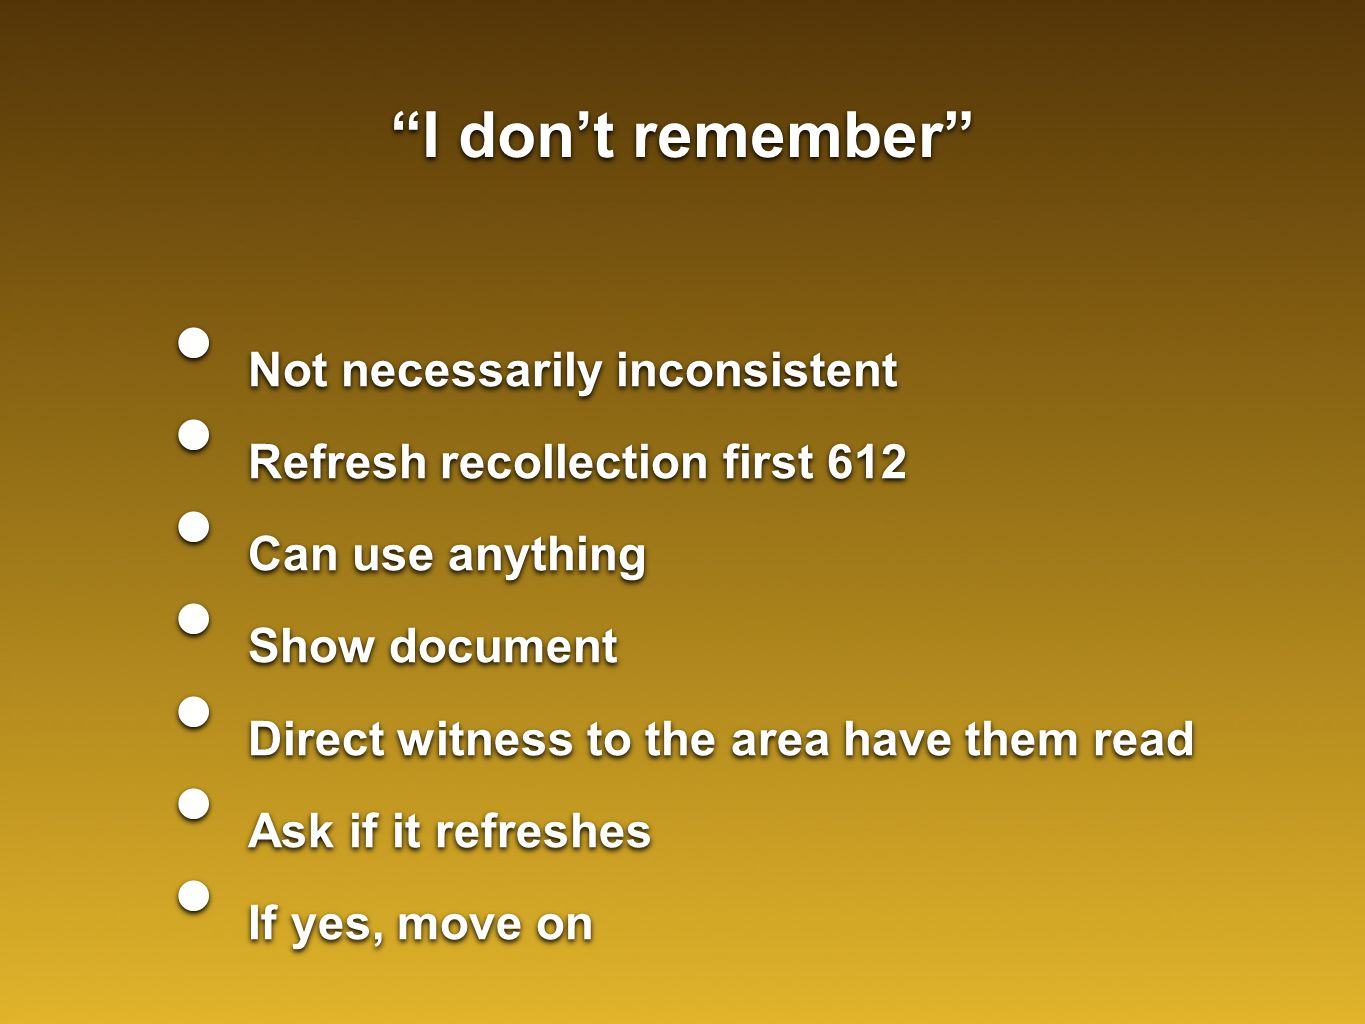 I don't remember Not necessarily inconsistent Refresh recollection first 612 Can use anything Show document Direct witness to the area have them read Ask if it refreshes If yes, move on Not necessarily inconsistent Refresh recollection first 612 Can use anything Show document Direct witness to the area have them read Ask if it refreshes If yes, move on